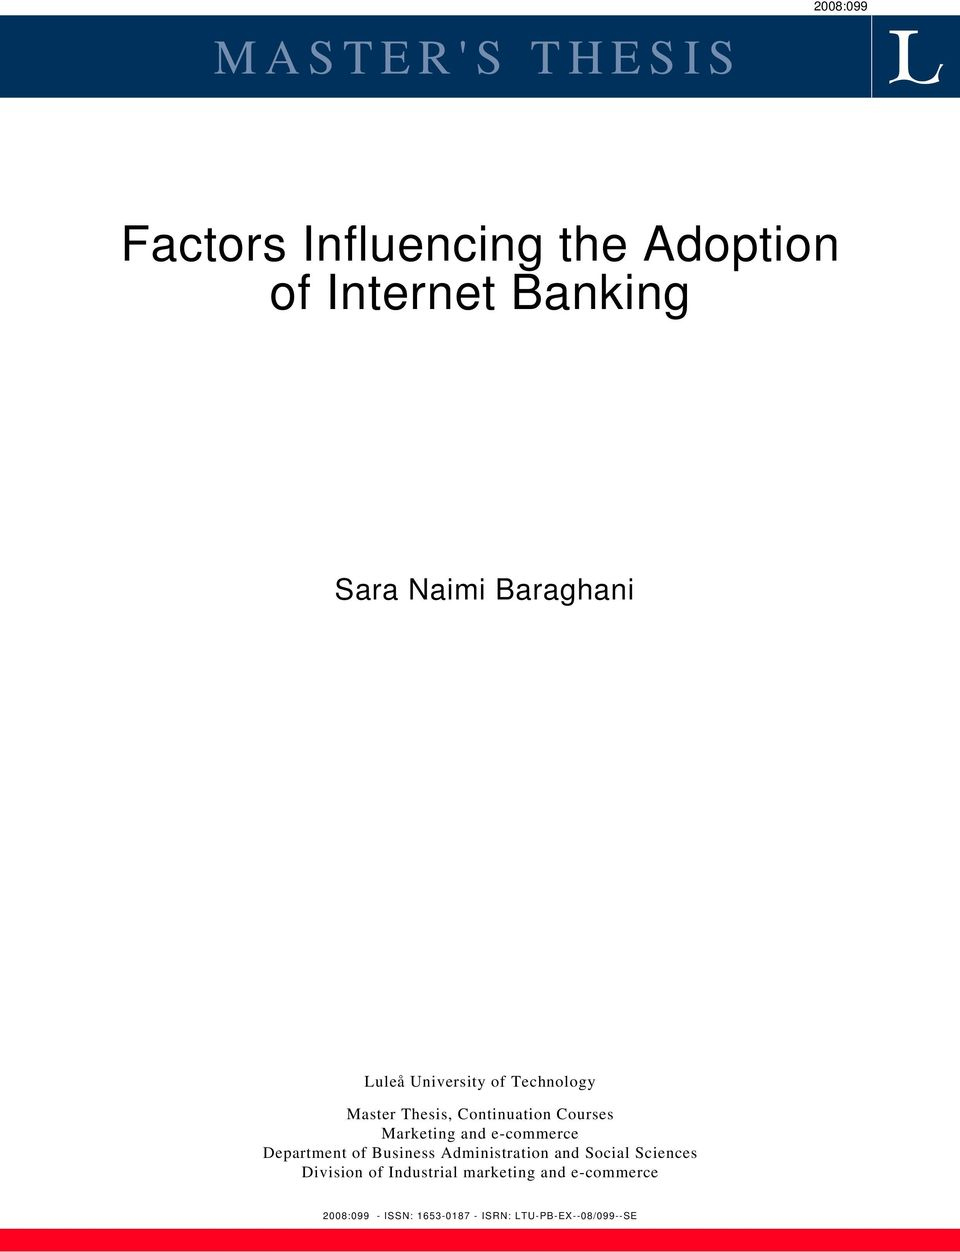 master thesis on internet banking Topic: internet banking do you require assistance with a doctorate dissertation, a doctorate thesis, or a doctoral research proposal about internet banking.